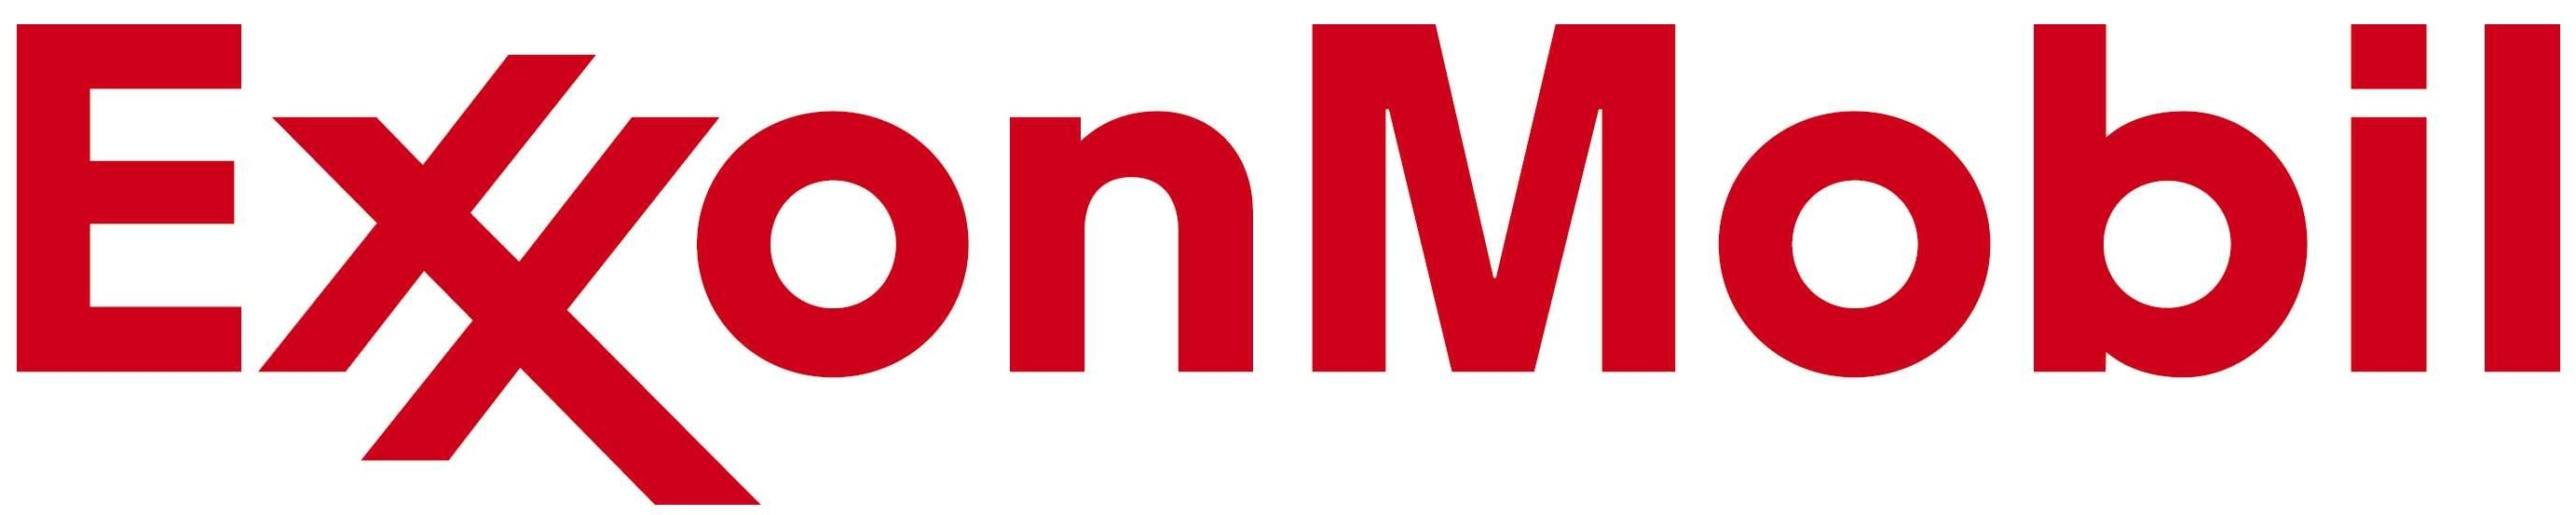 Exxon Mobil - Follow on LinkedIn the world's largest publicly traded international oil and gas company in the world